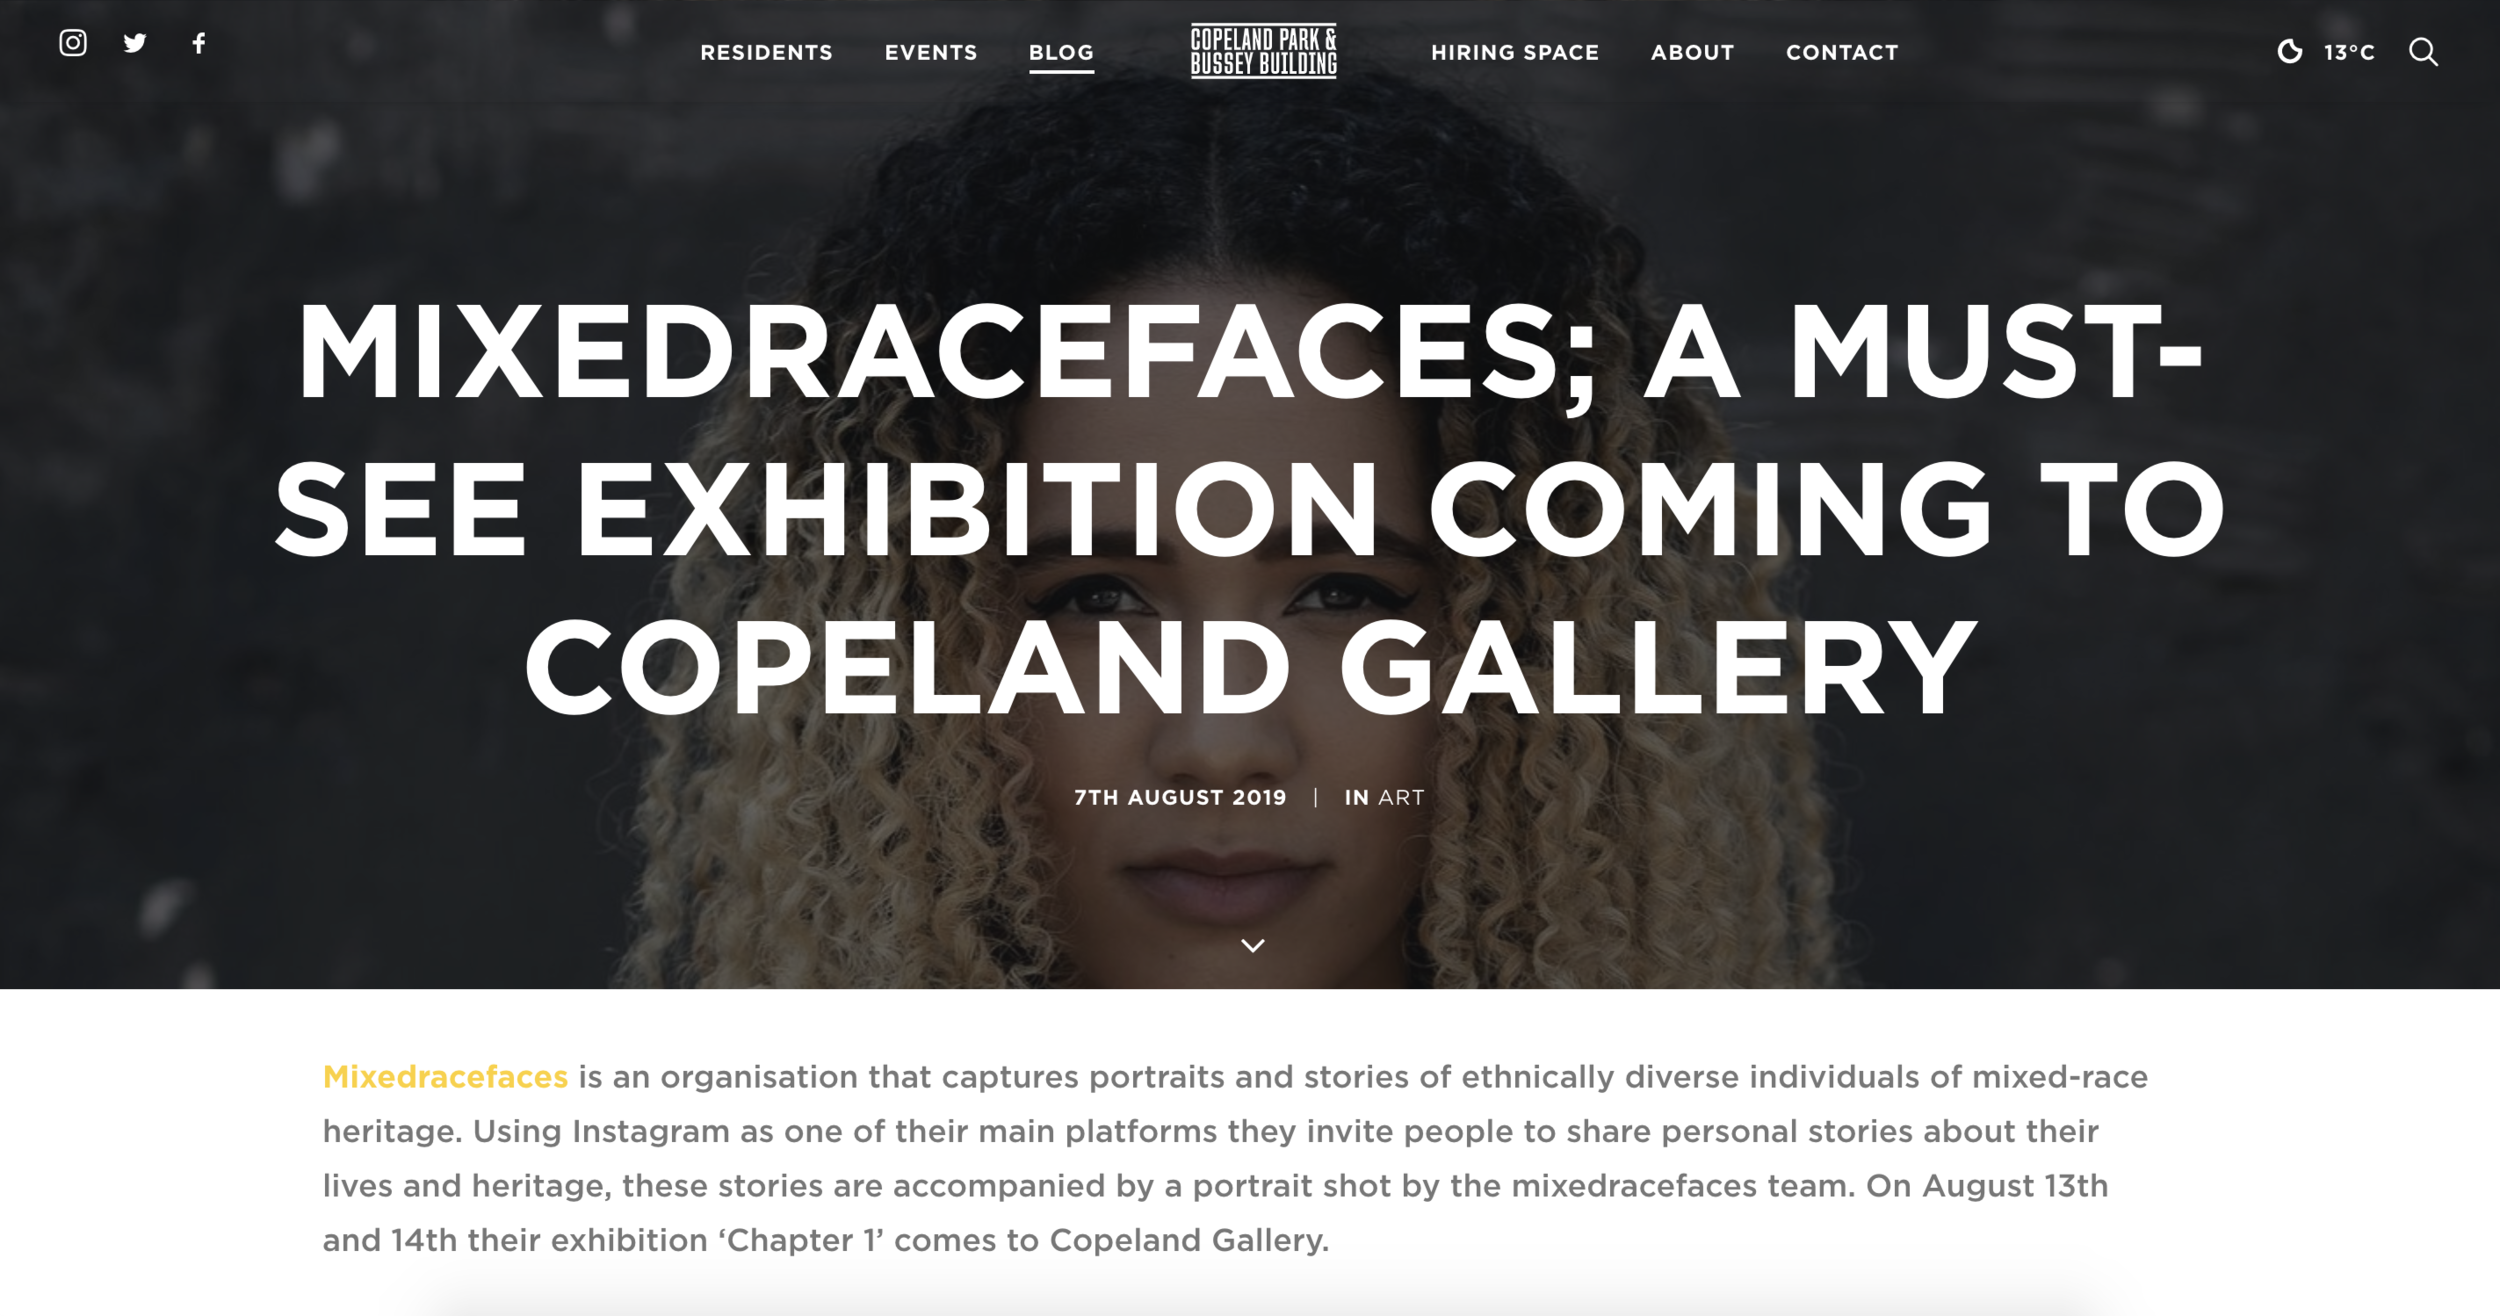 - https://www.copelandpark.com/blog/2019/08/07/mixedracefaces-a-must-see-exhibition-coming-to-copeland-gallery/